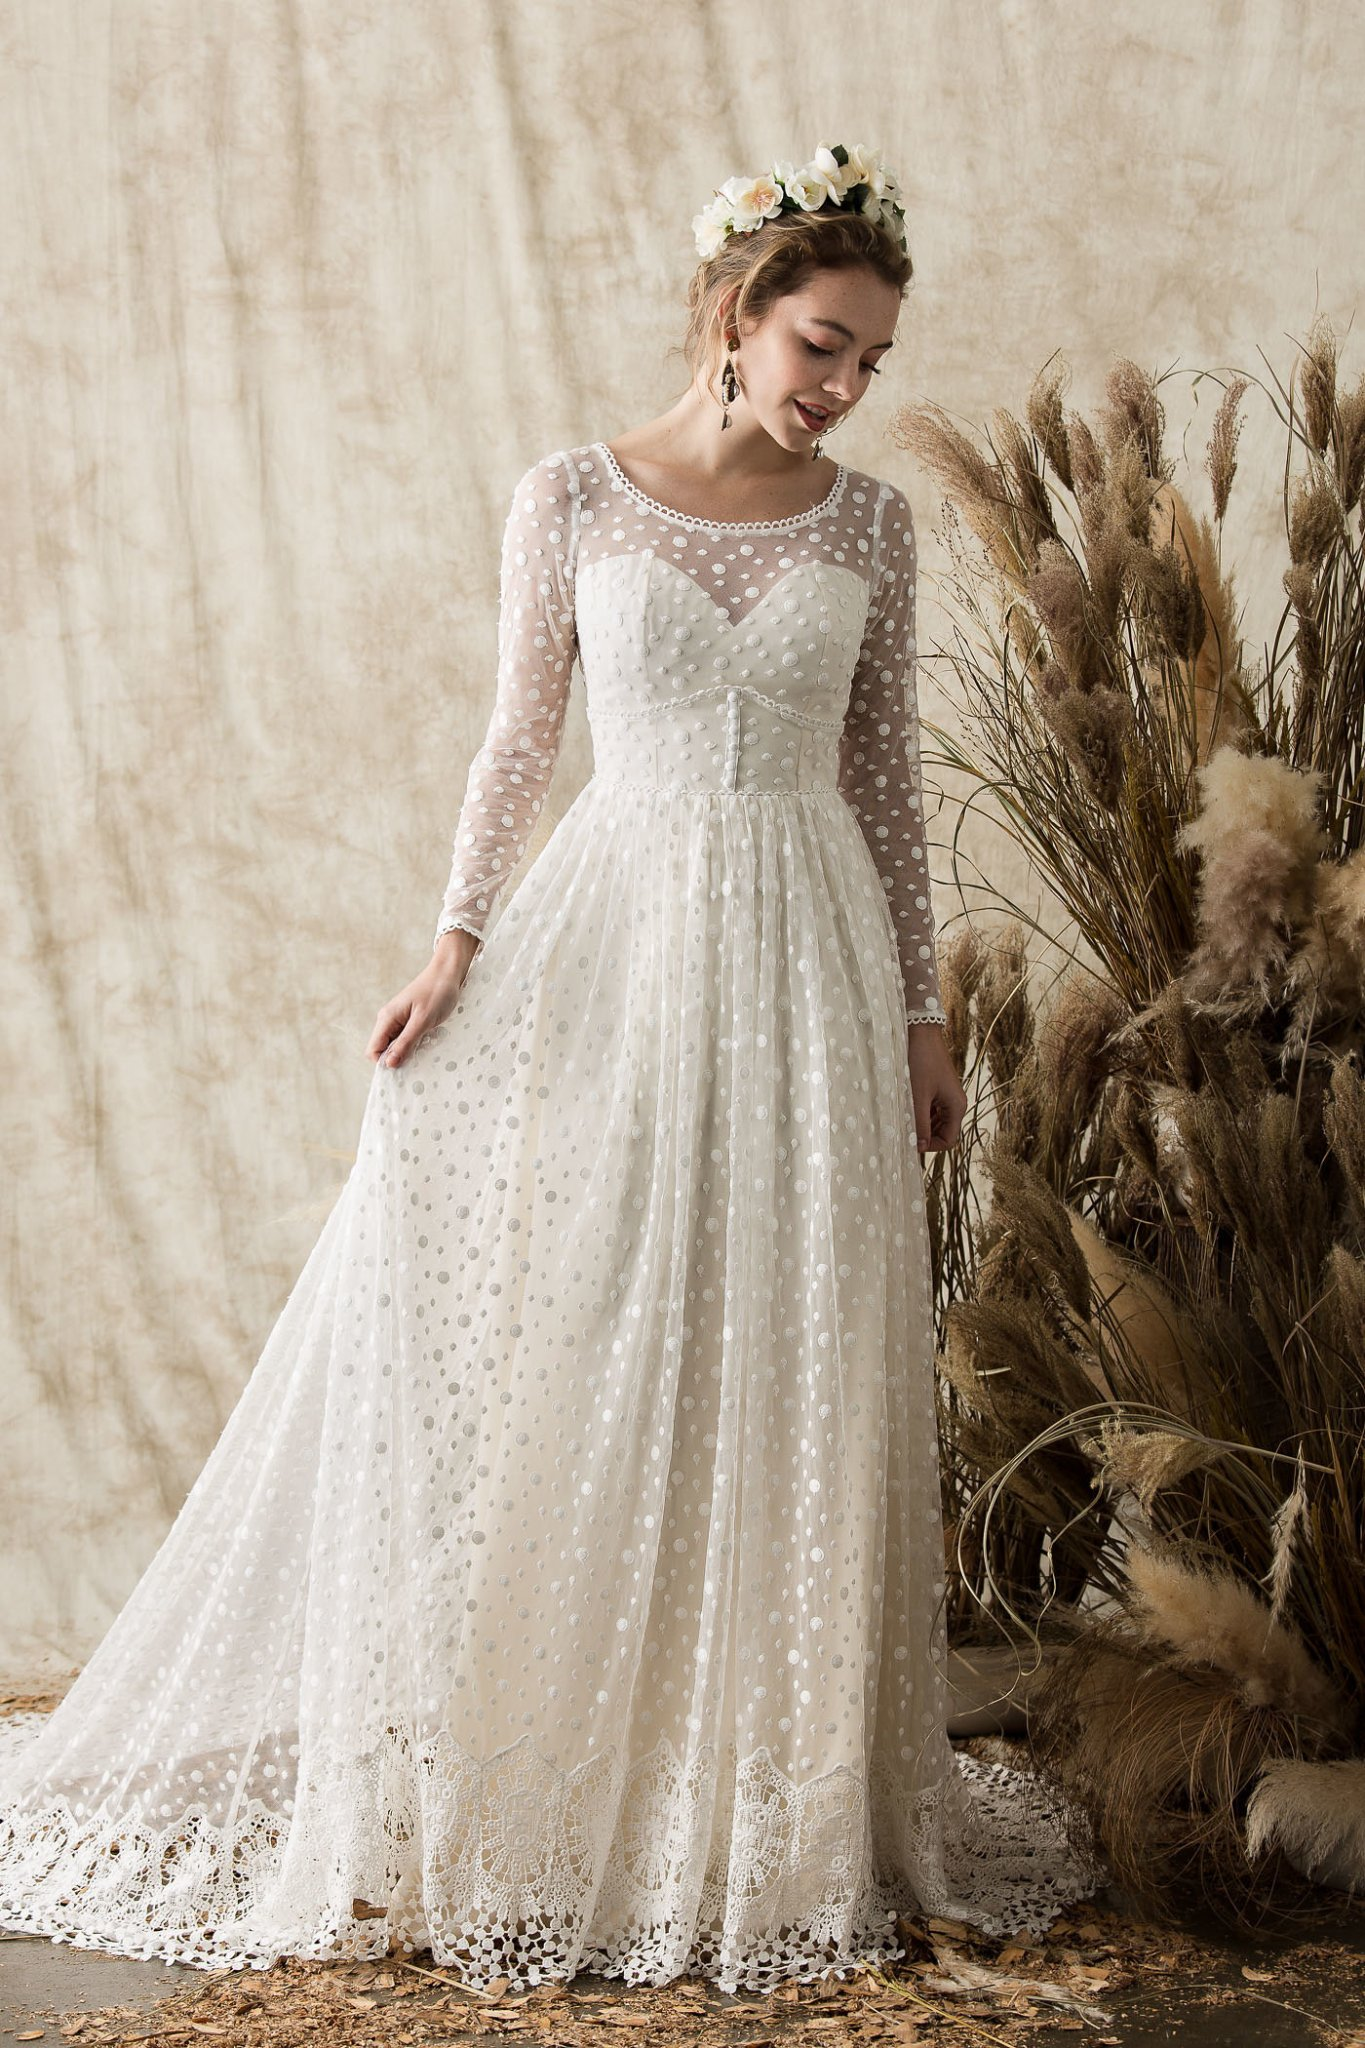 Miranda Long Sleeve Lace Wedding Dress | Dreamers and Lovers